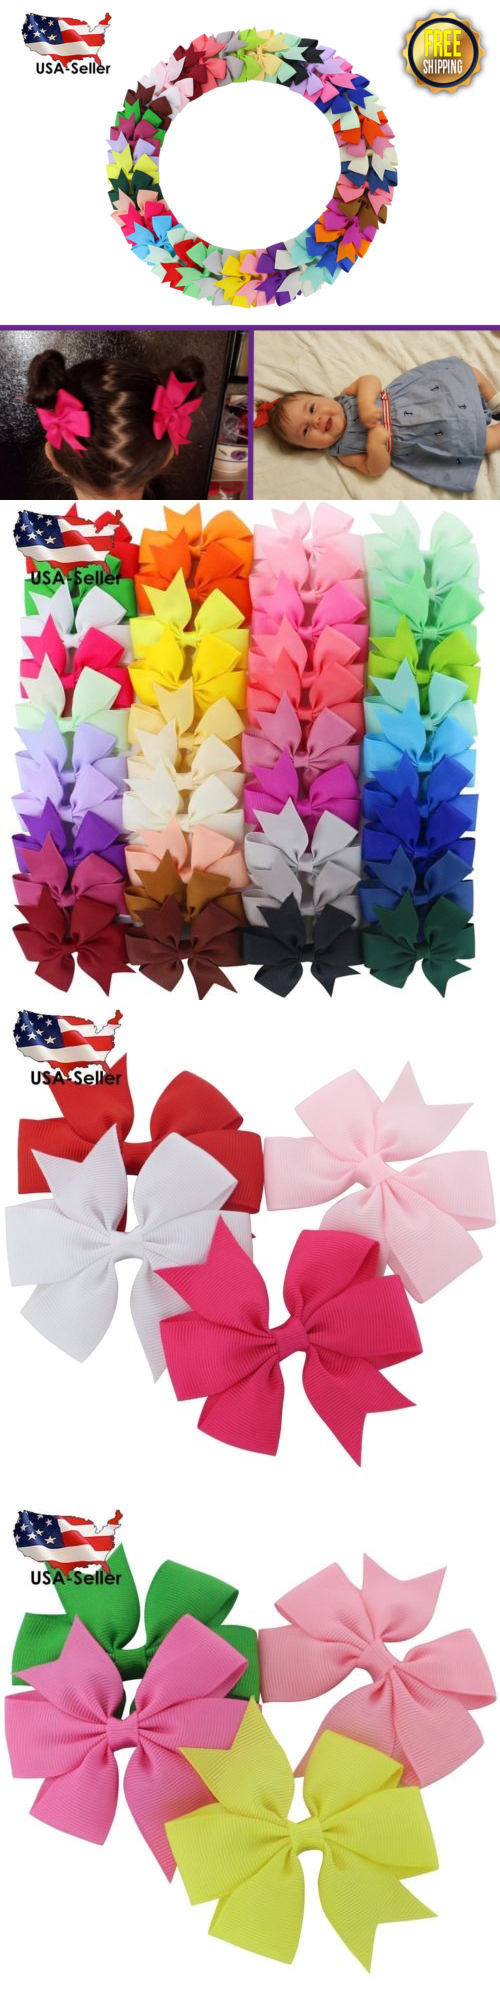 Hair accessories for babies ebay - Hair Accessories 18786 40 Pc Fortop Baby Girls Boutique Grosgrain Ribbon Pinwheel Hair Bows